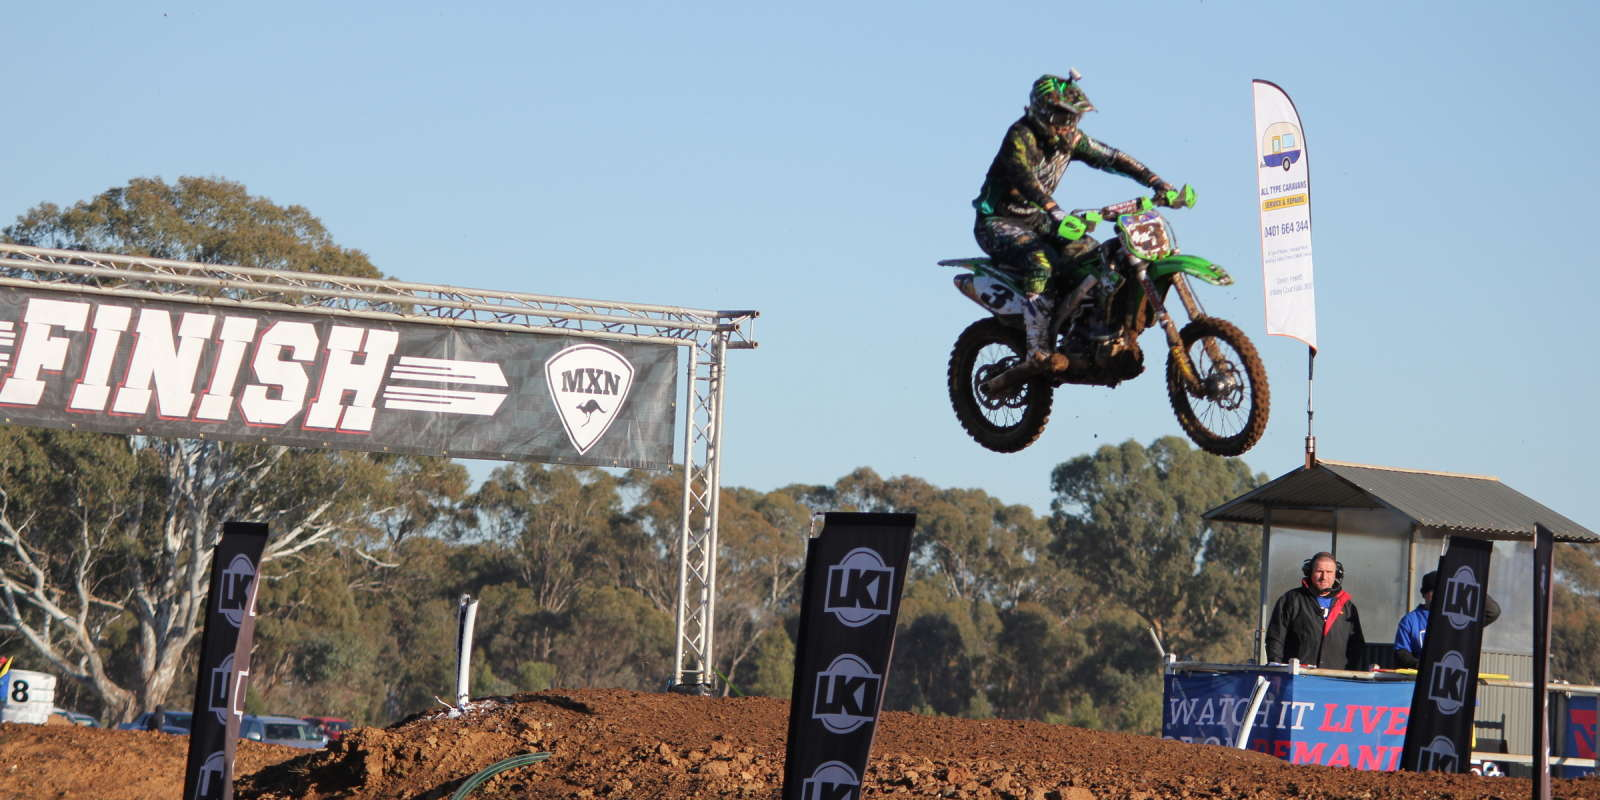 NPS Monster Energy Kawasaki at  Round 7 of the Australian MX Nationals in Shepparton, Victoria